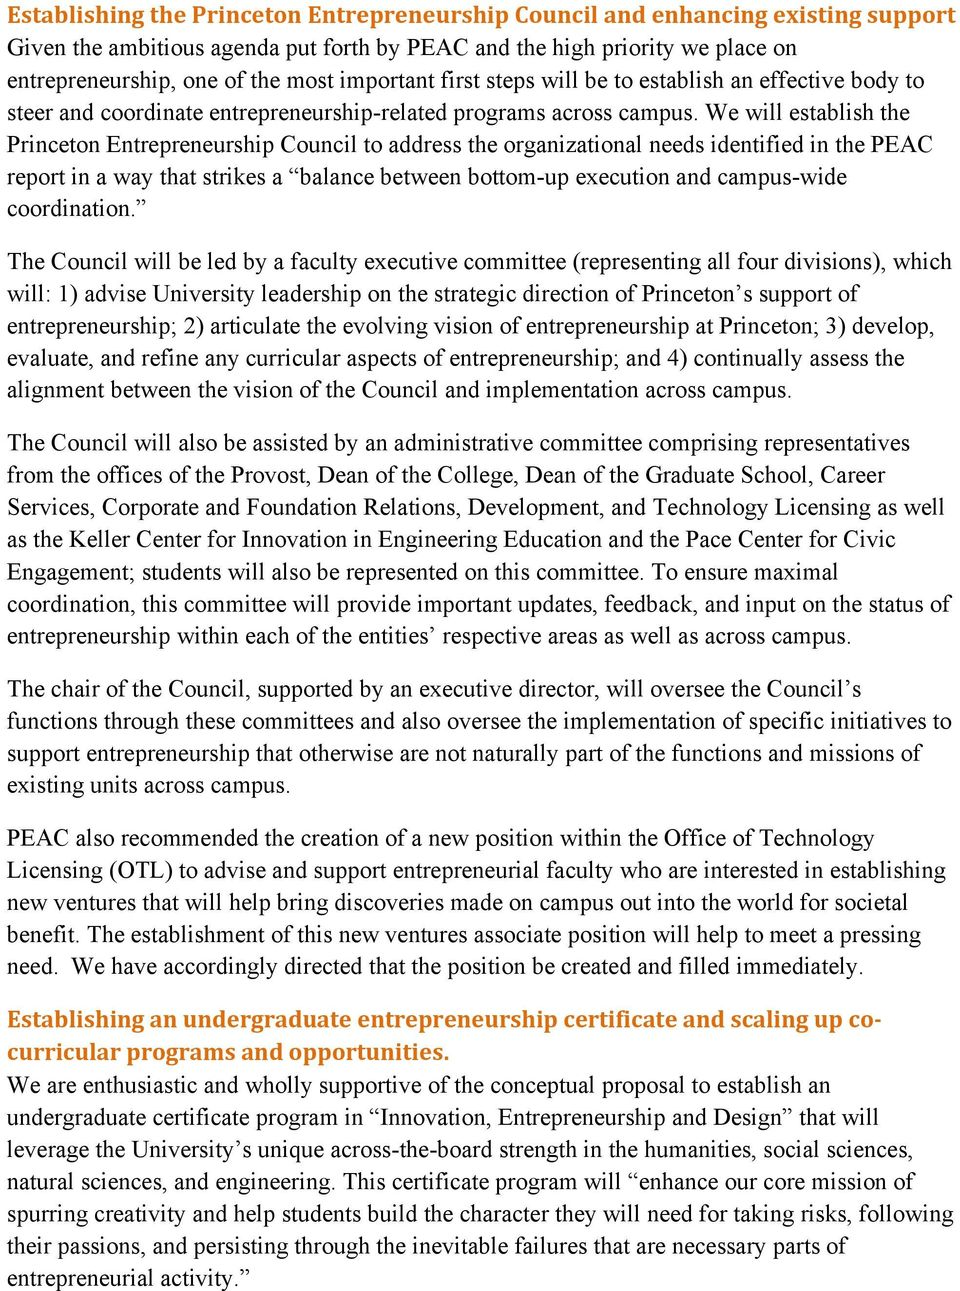 We will establish the Princeton Entrepreneurship Council to address the organizational needs identified in the PEAC report in a way that strikes a balance between bottom-up execution and campus-wide